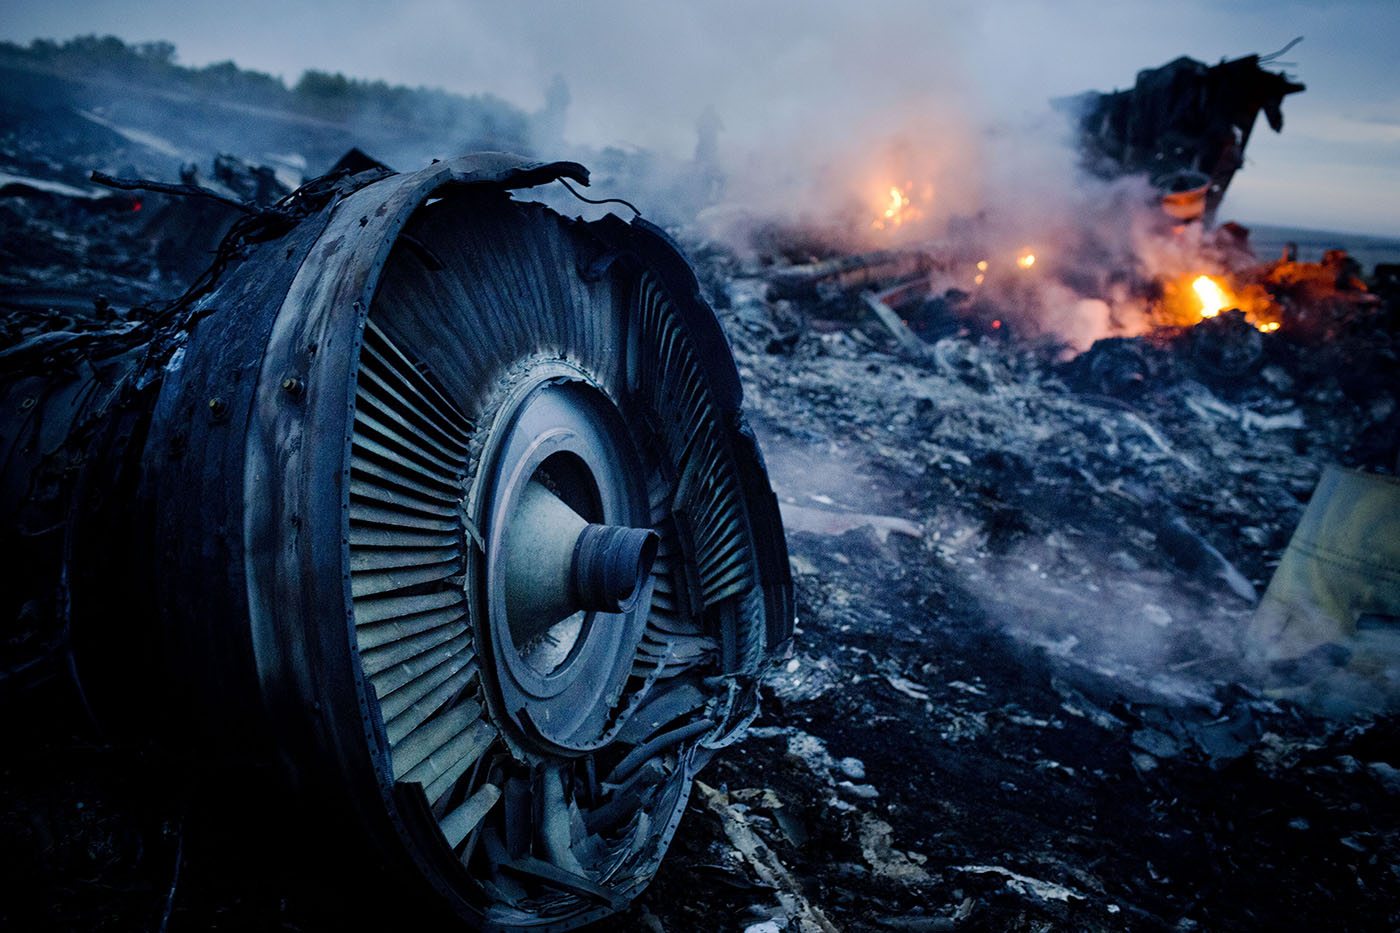 Air Malaysia Passenger Jet Crashes In Eastern Ukraine